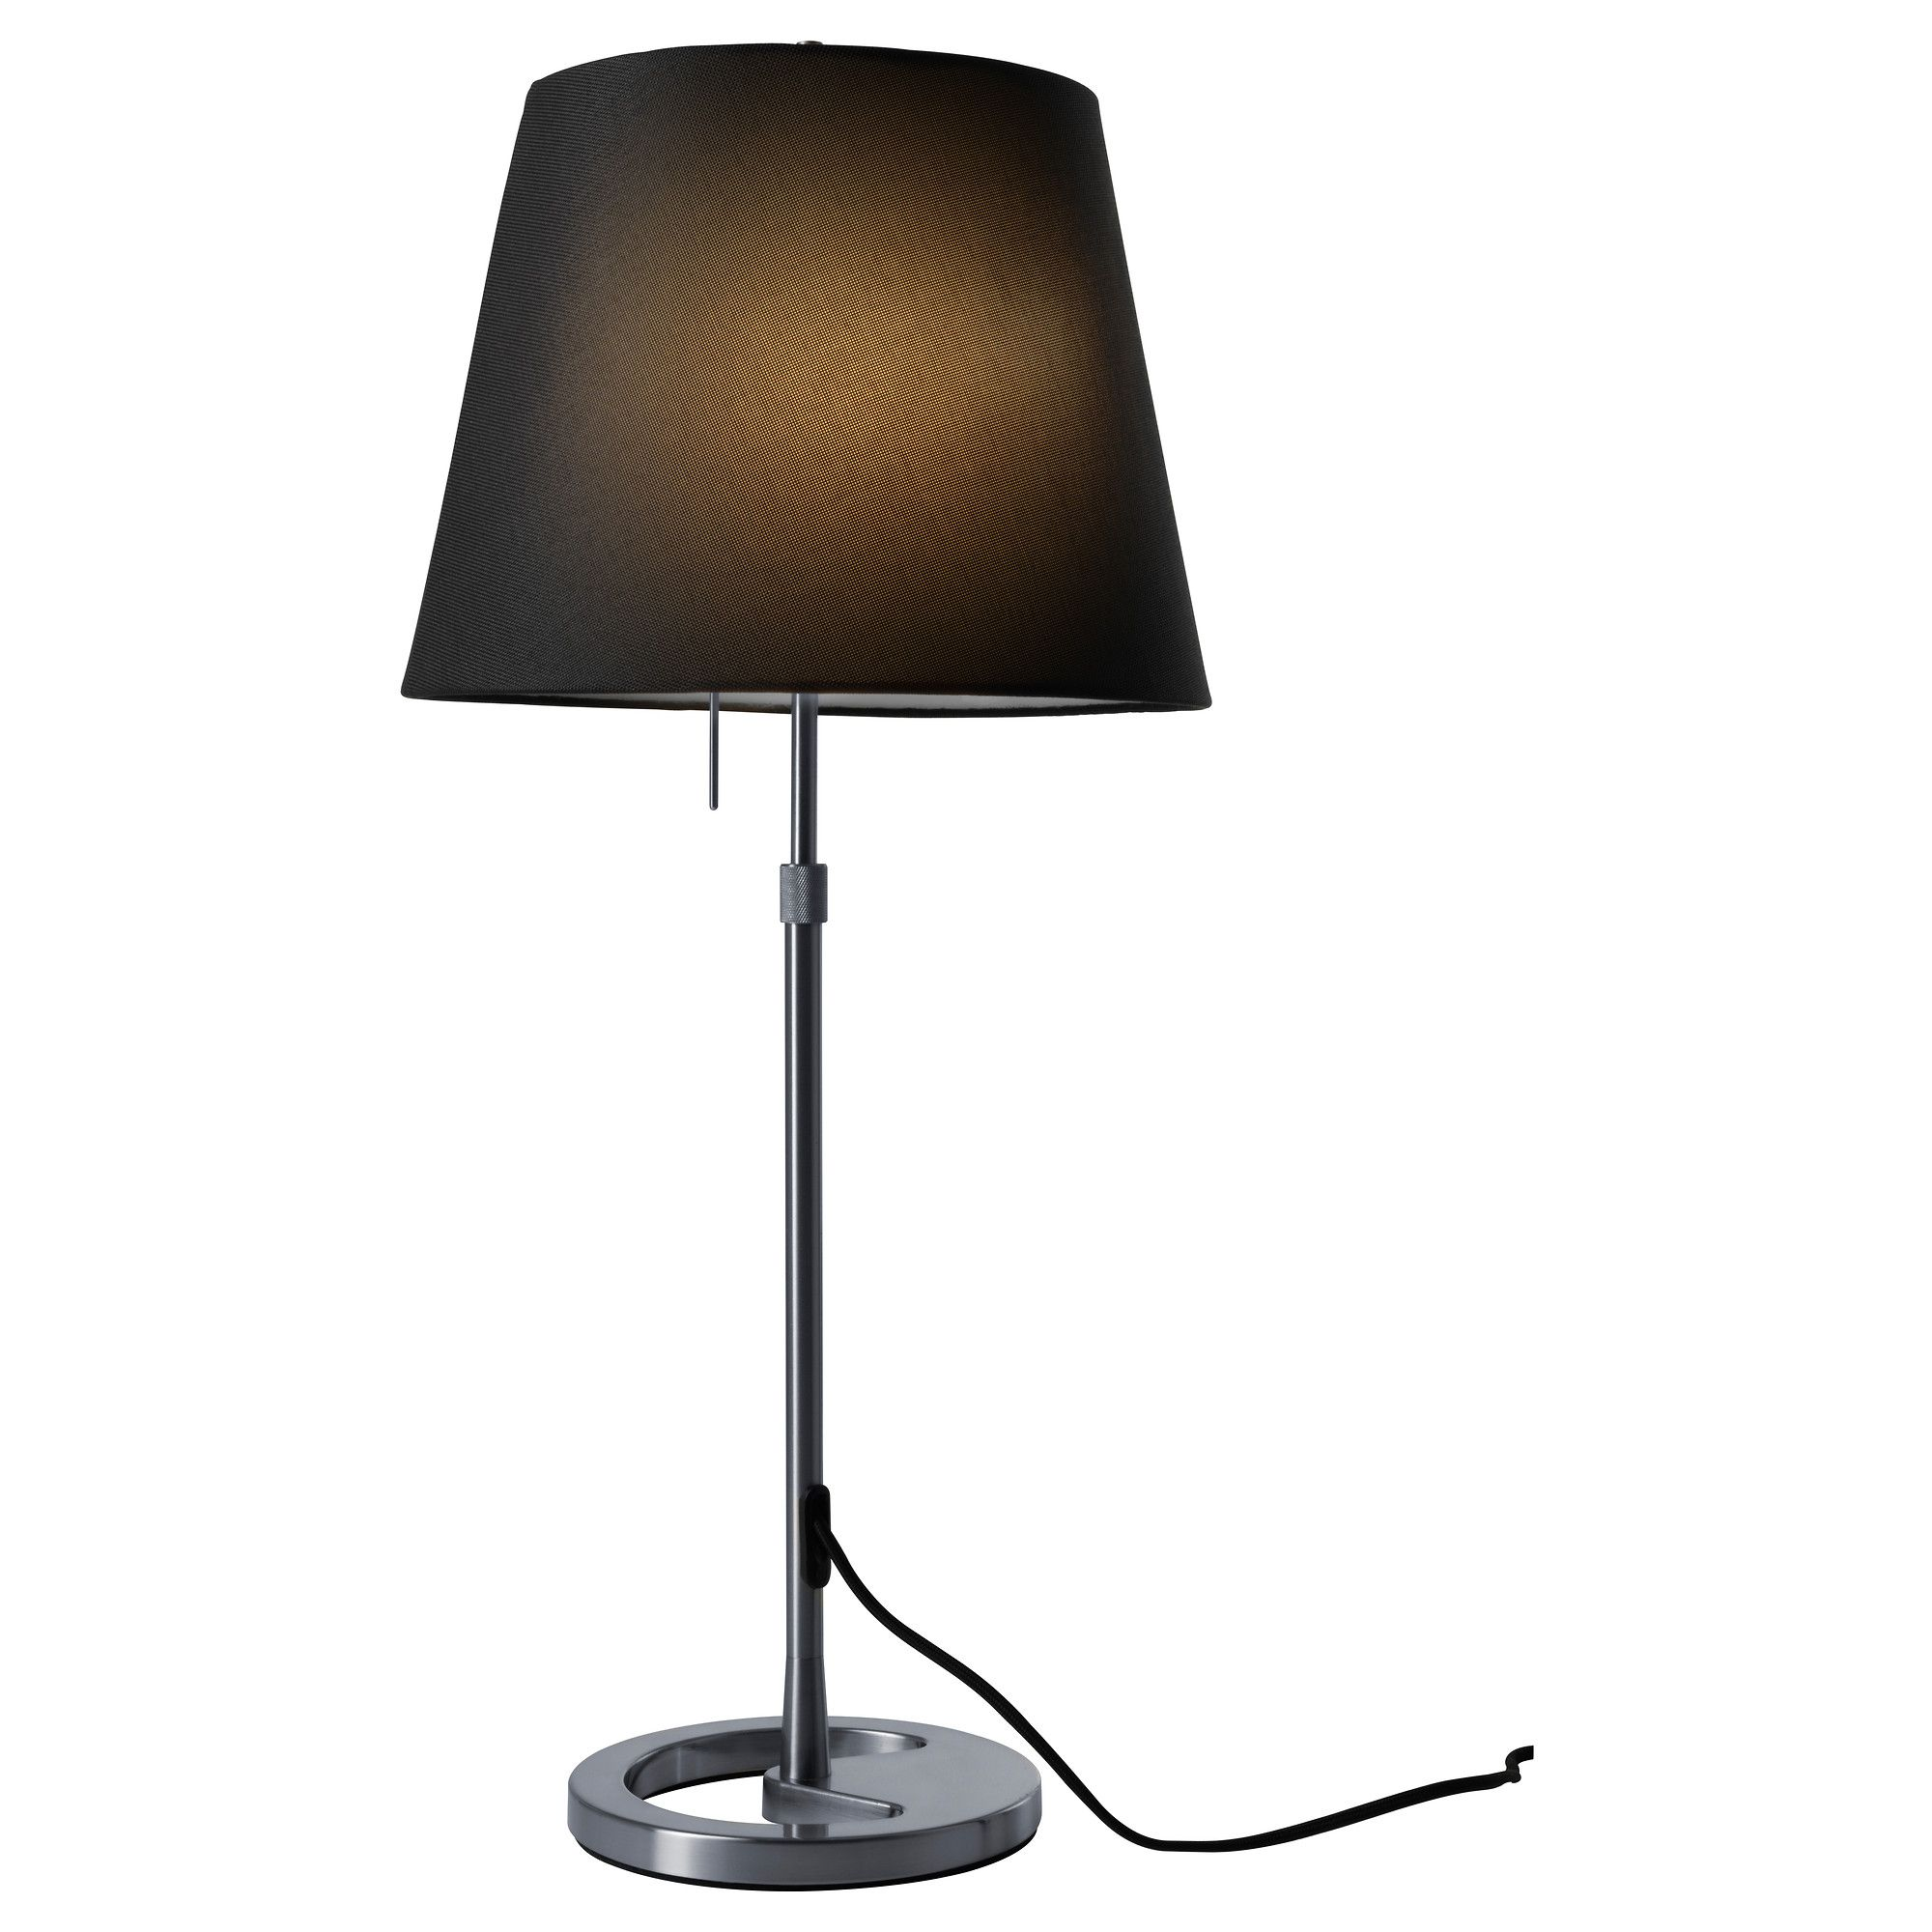 Bedside lamps NYFORS Table lamp IKEA Wish List